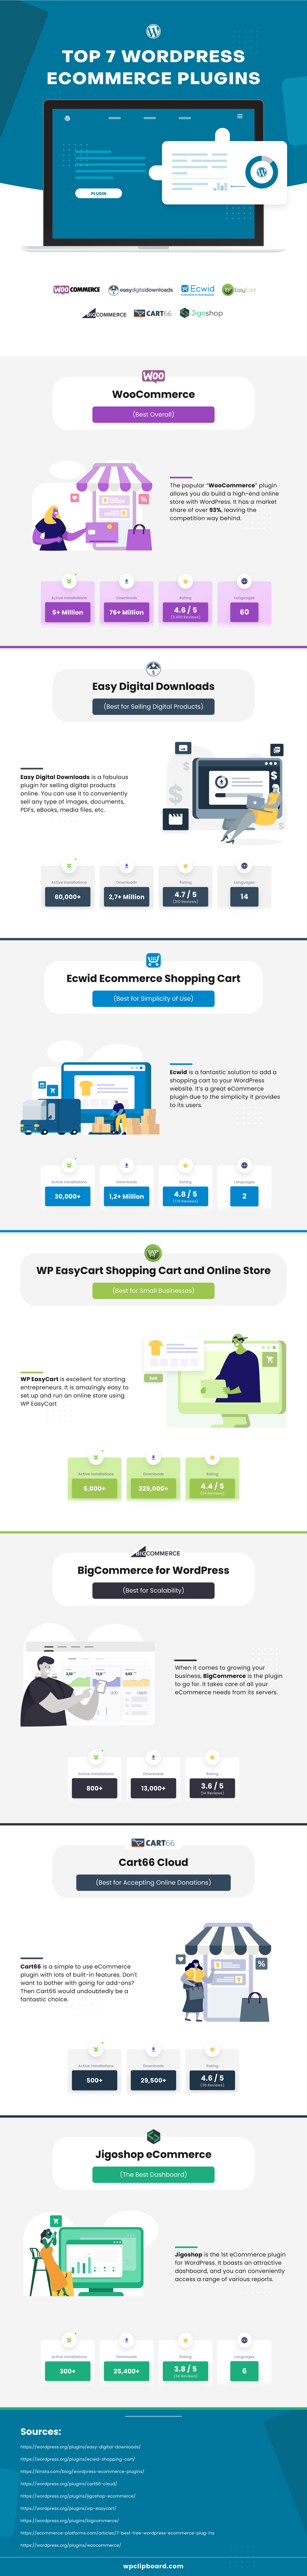 infographic showing top 7 wordpress ecommerce plugins